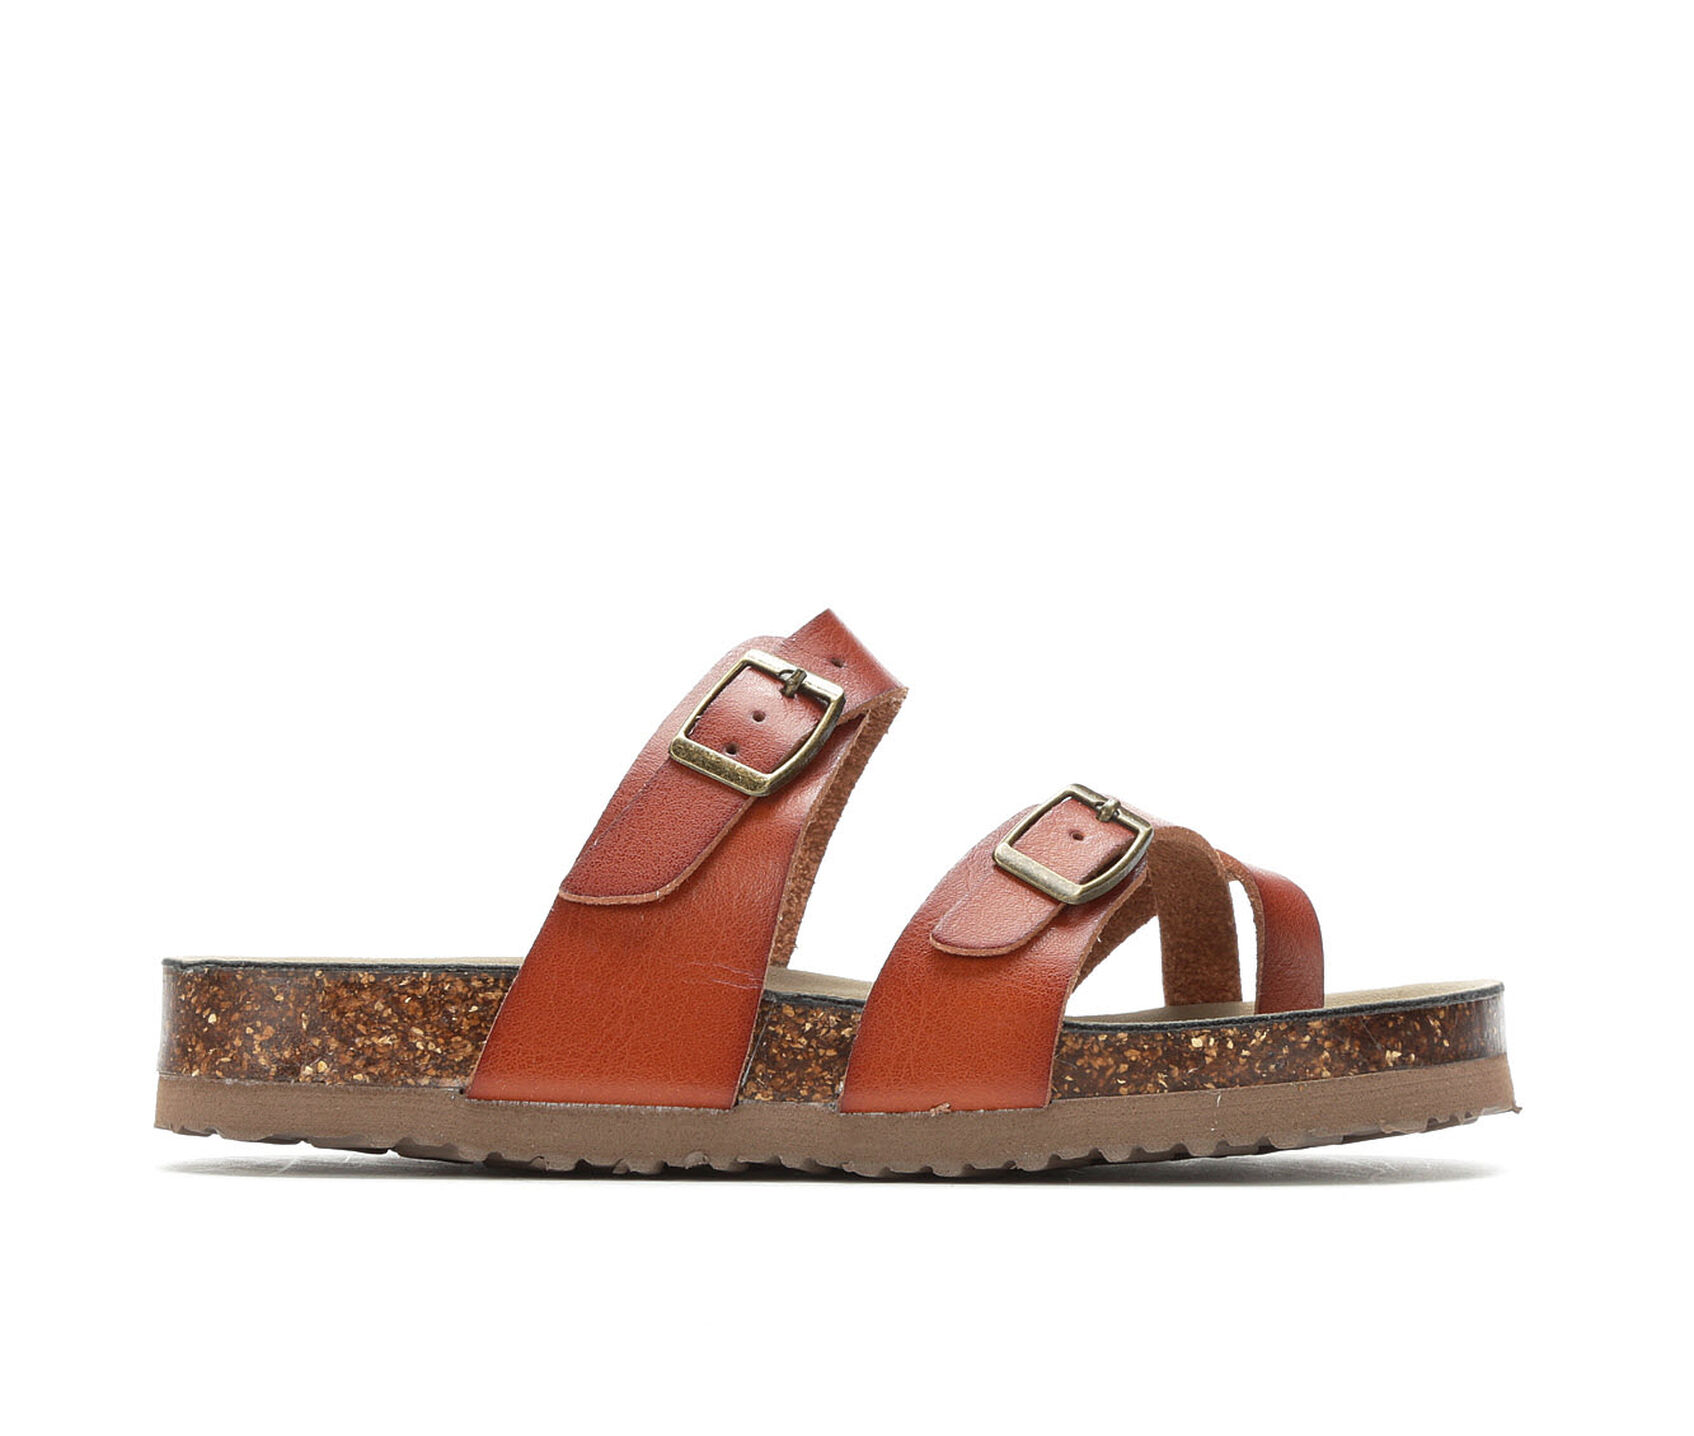 334c469dafe5 ... Madden Girl Little Kid  amp  Big Kid JBryceee Footbed Sandals. Carousel  Controls Previous